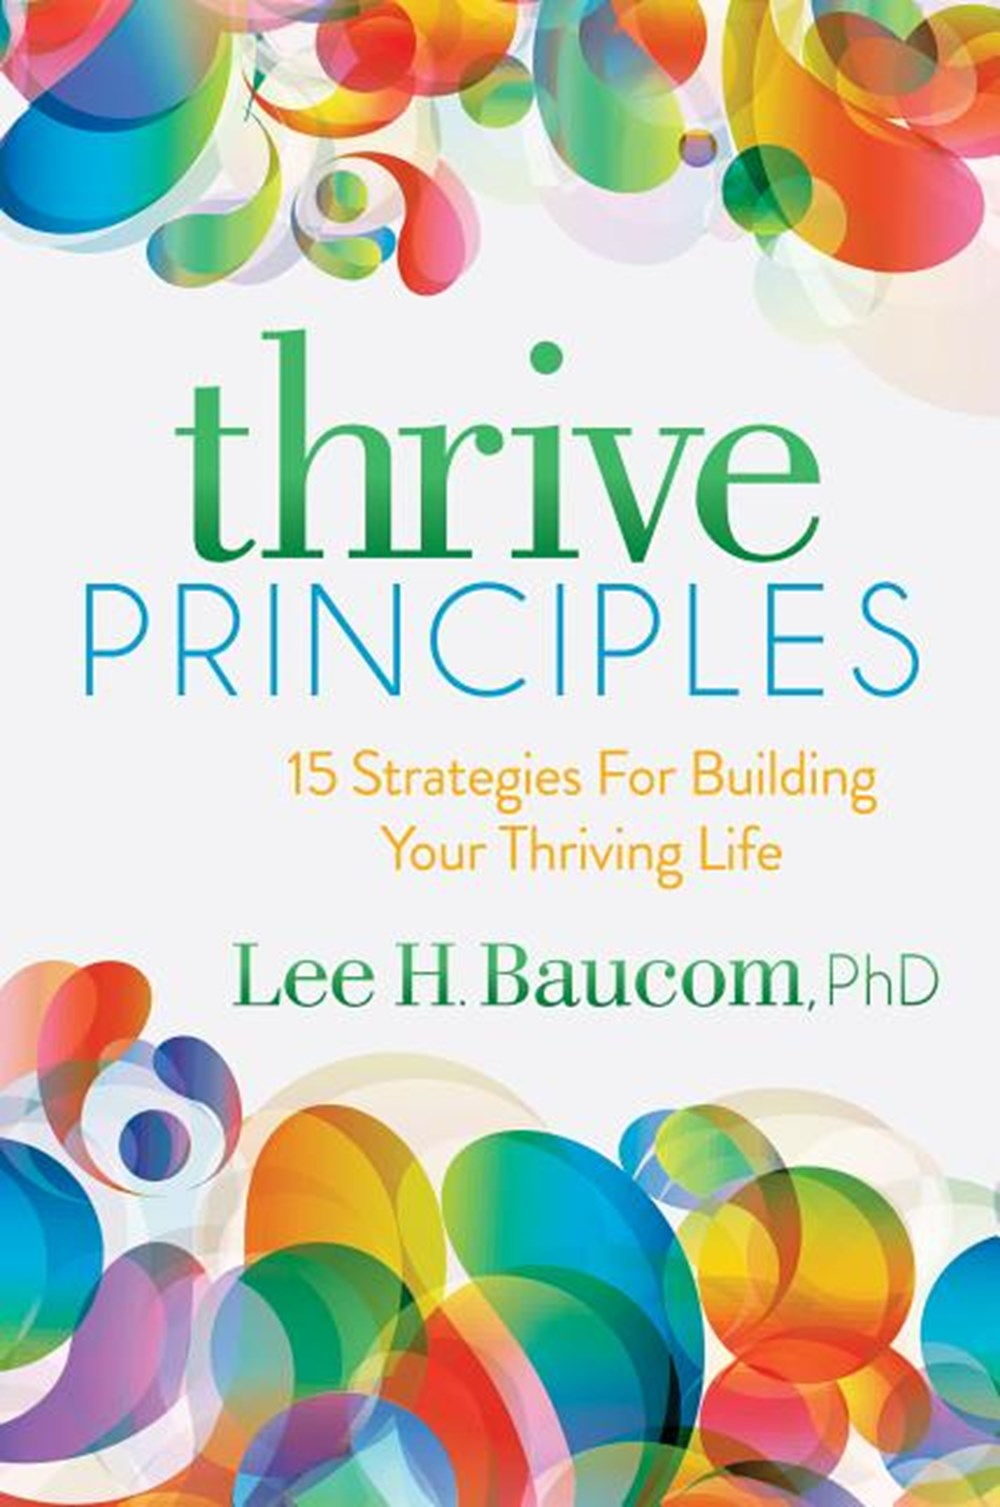 Thrive Principles 15 Strategies for Building Your Thriving Life